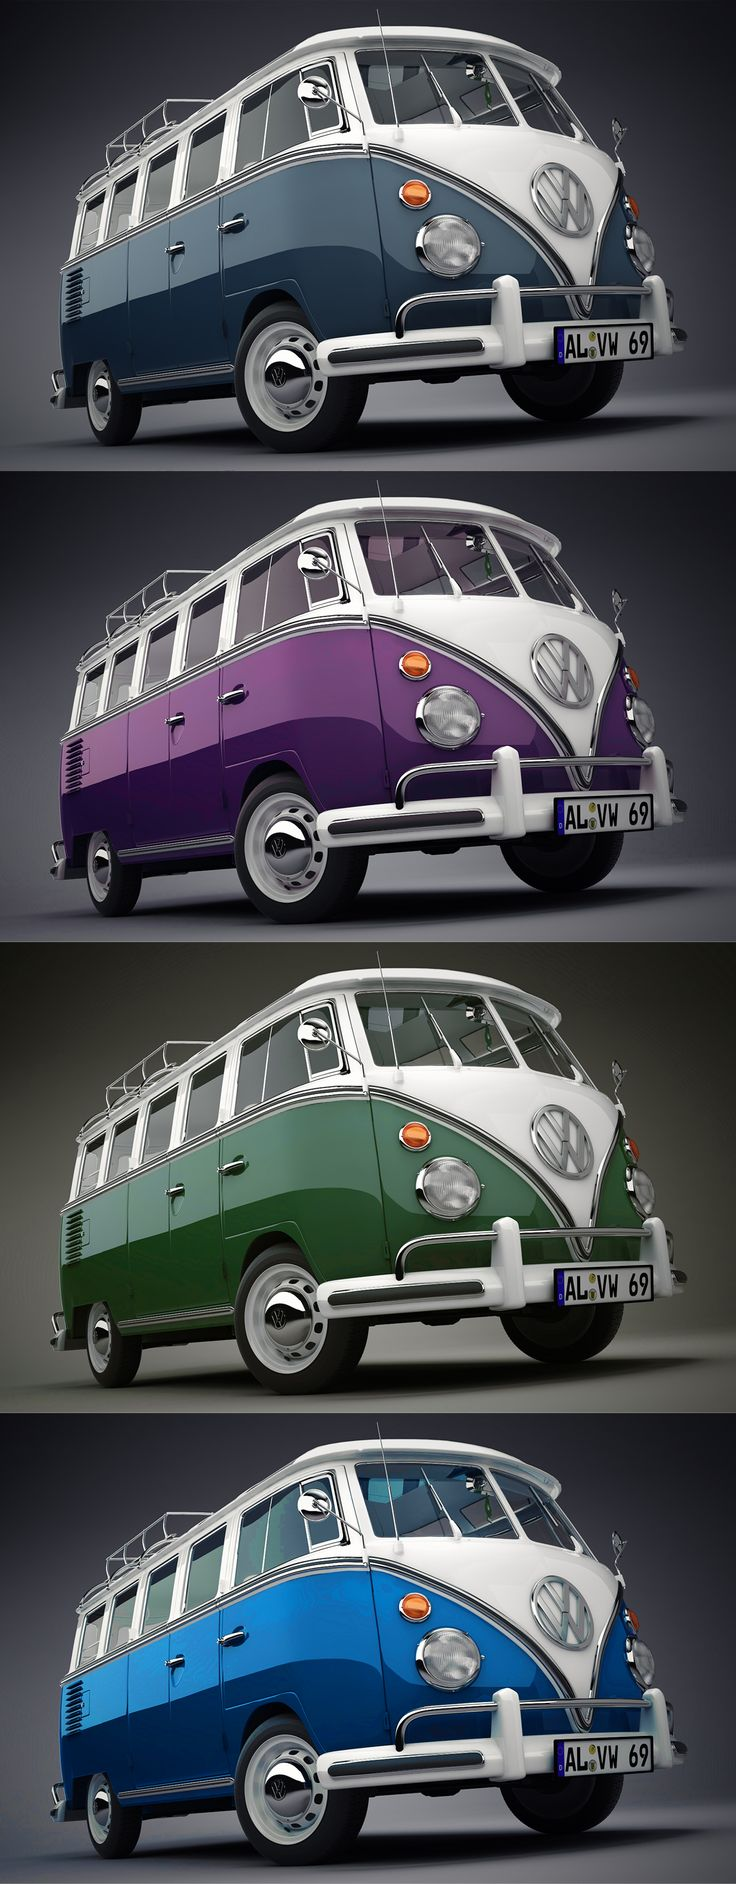 volkswagen van slot. I will take the Purple & White bus plz!!!